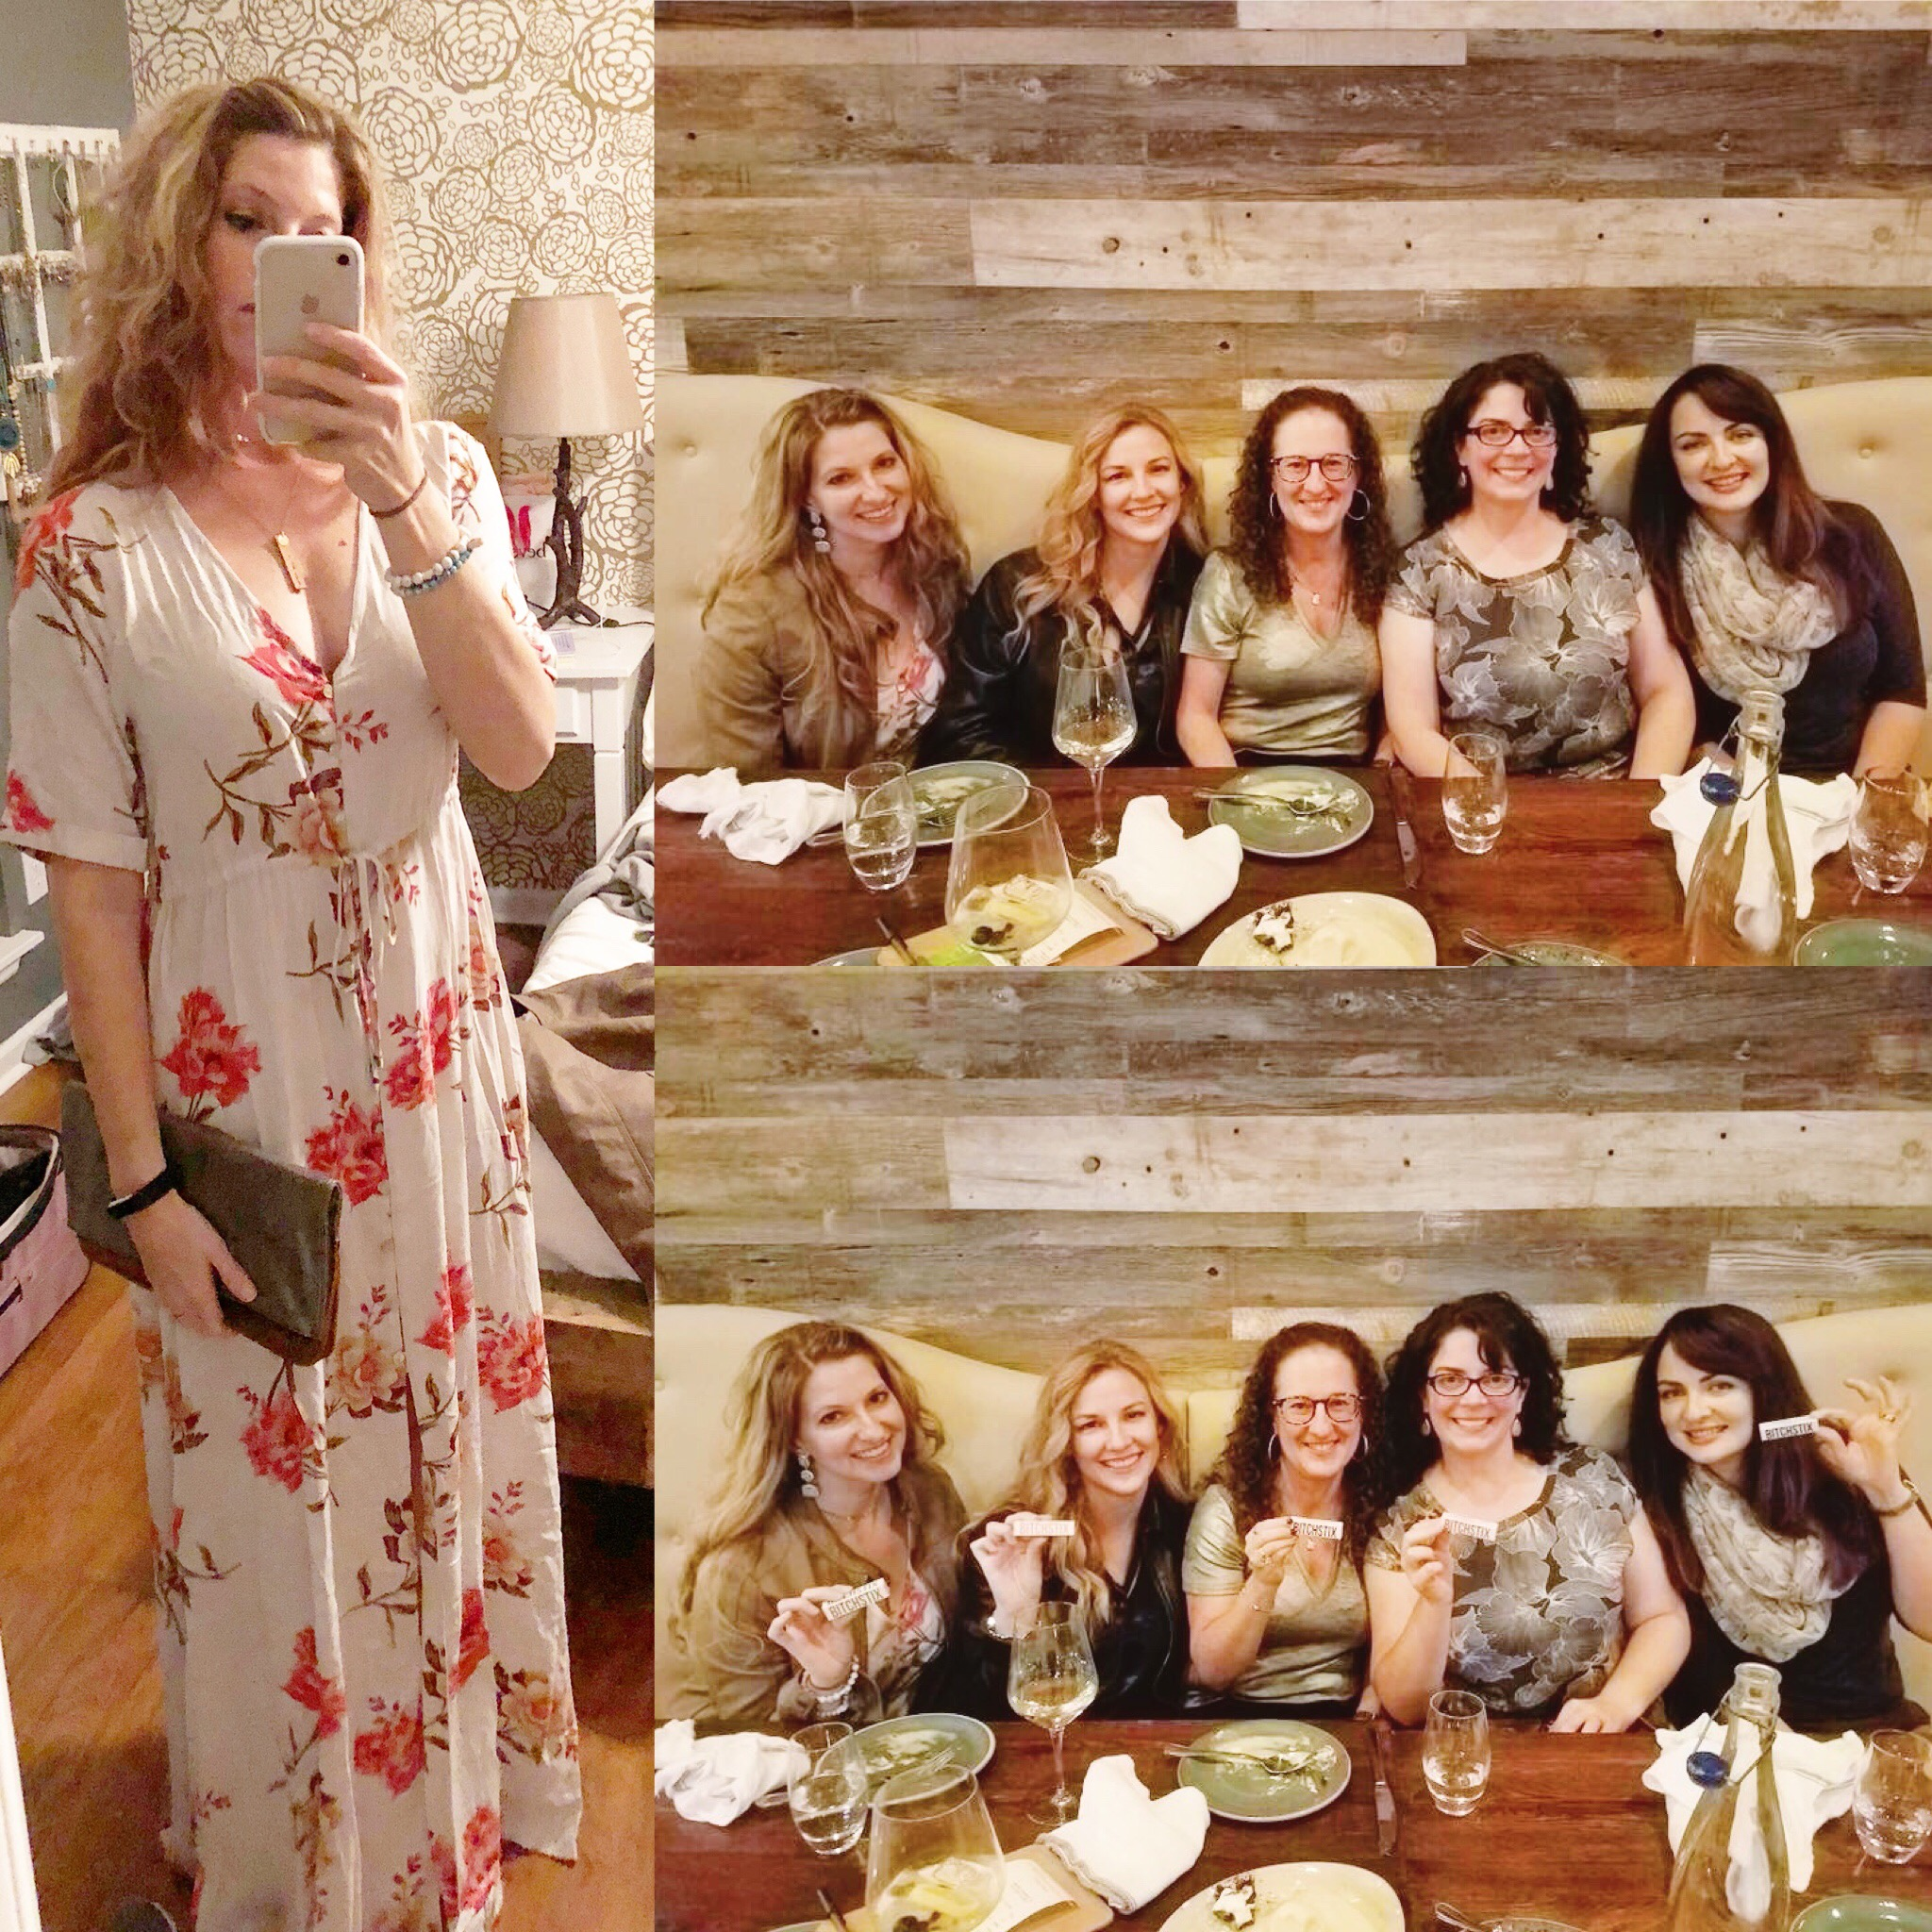 A fun time at girls night out (and me in non-running gear)